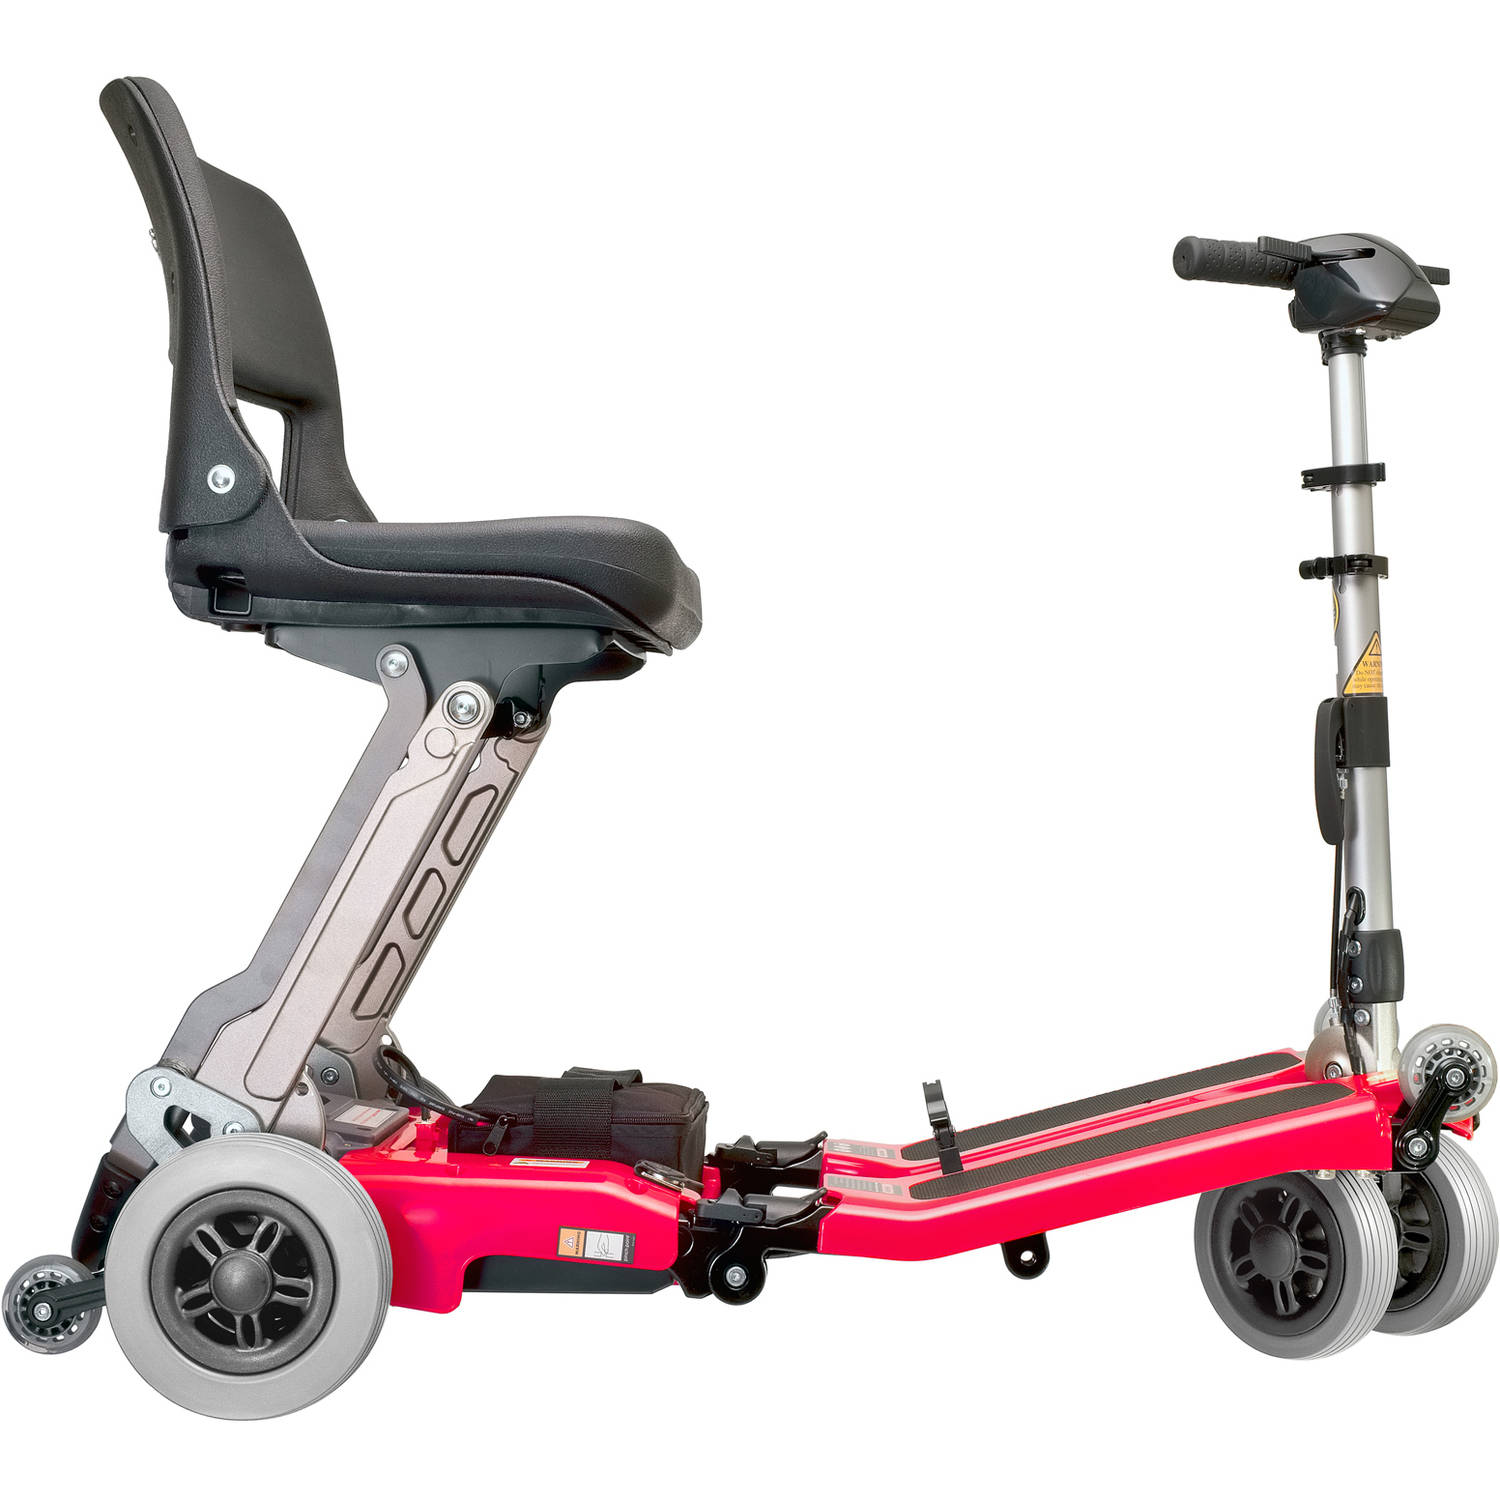 Luggie Classic Foldable Power Mobility Scooter - Red